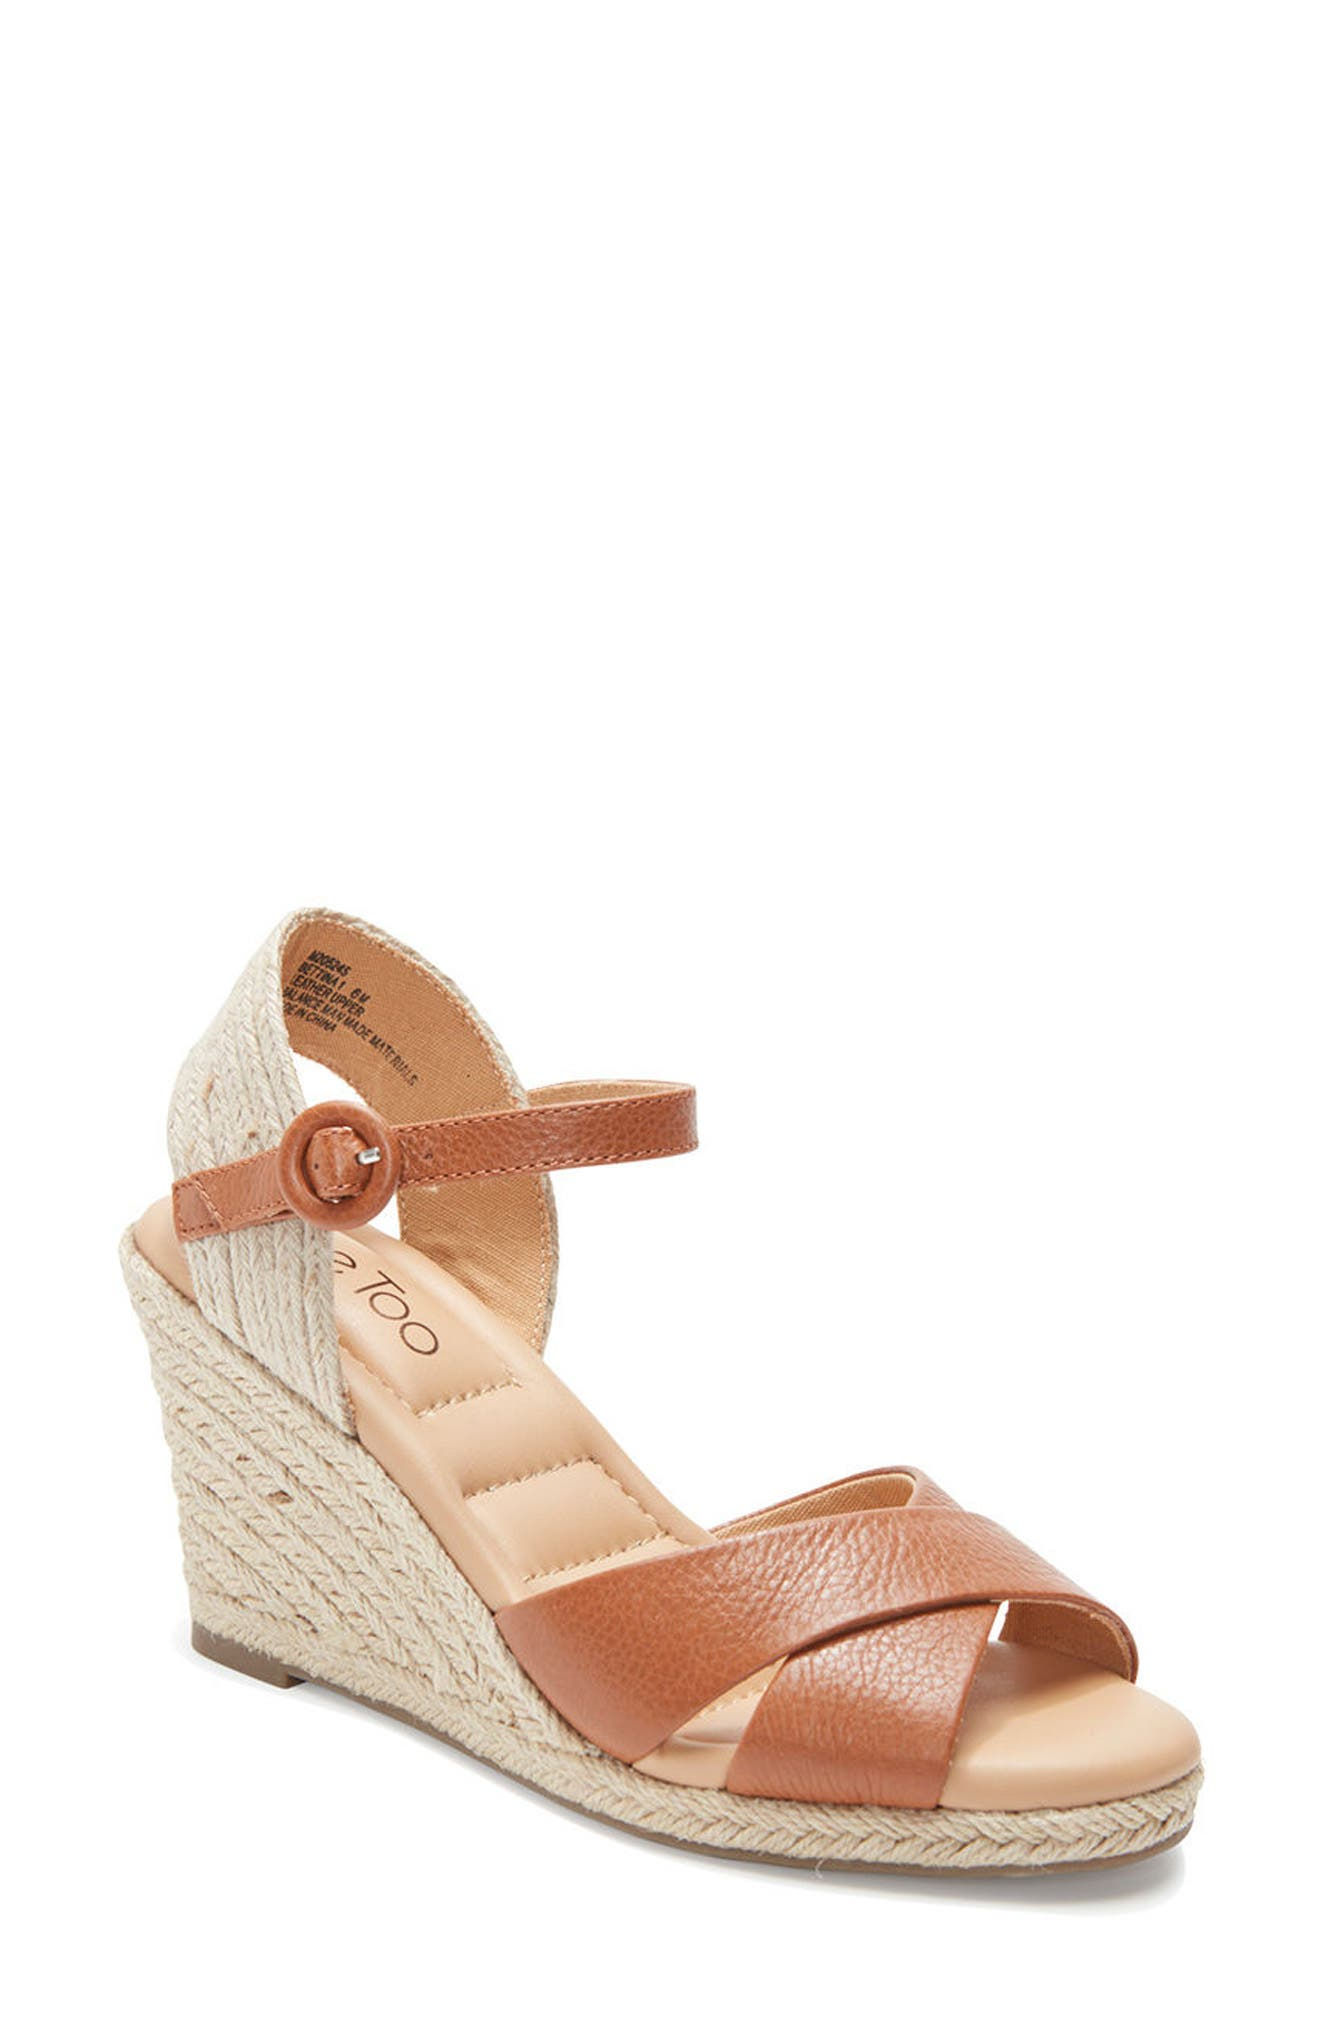 Alternate Image 1 Selected - Me Too Bettina Espadrille Wedge Sandal (Women)